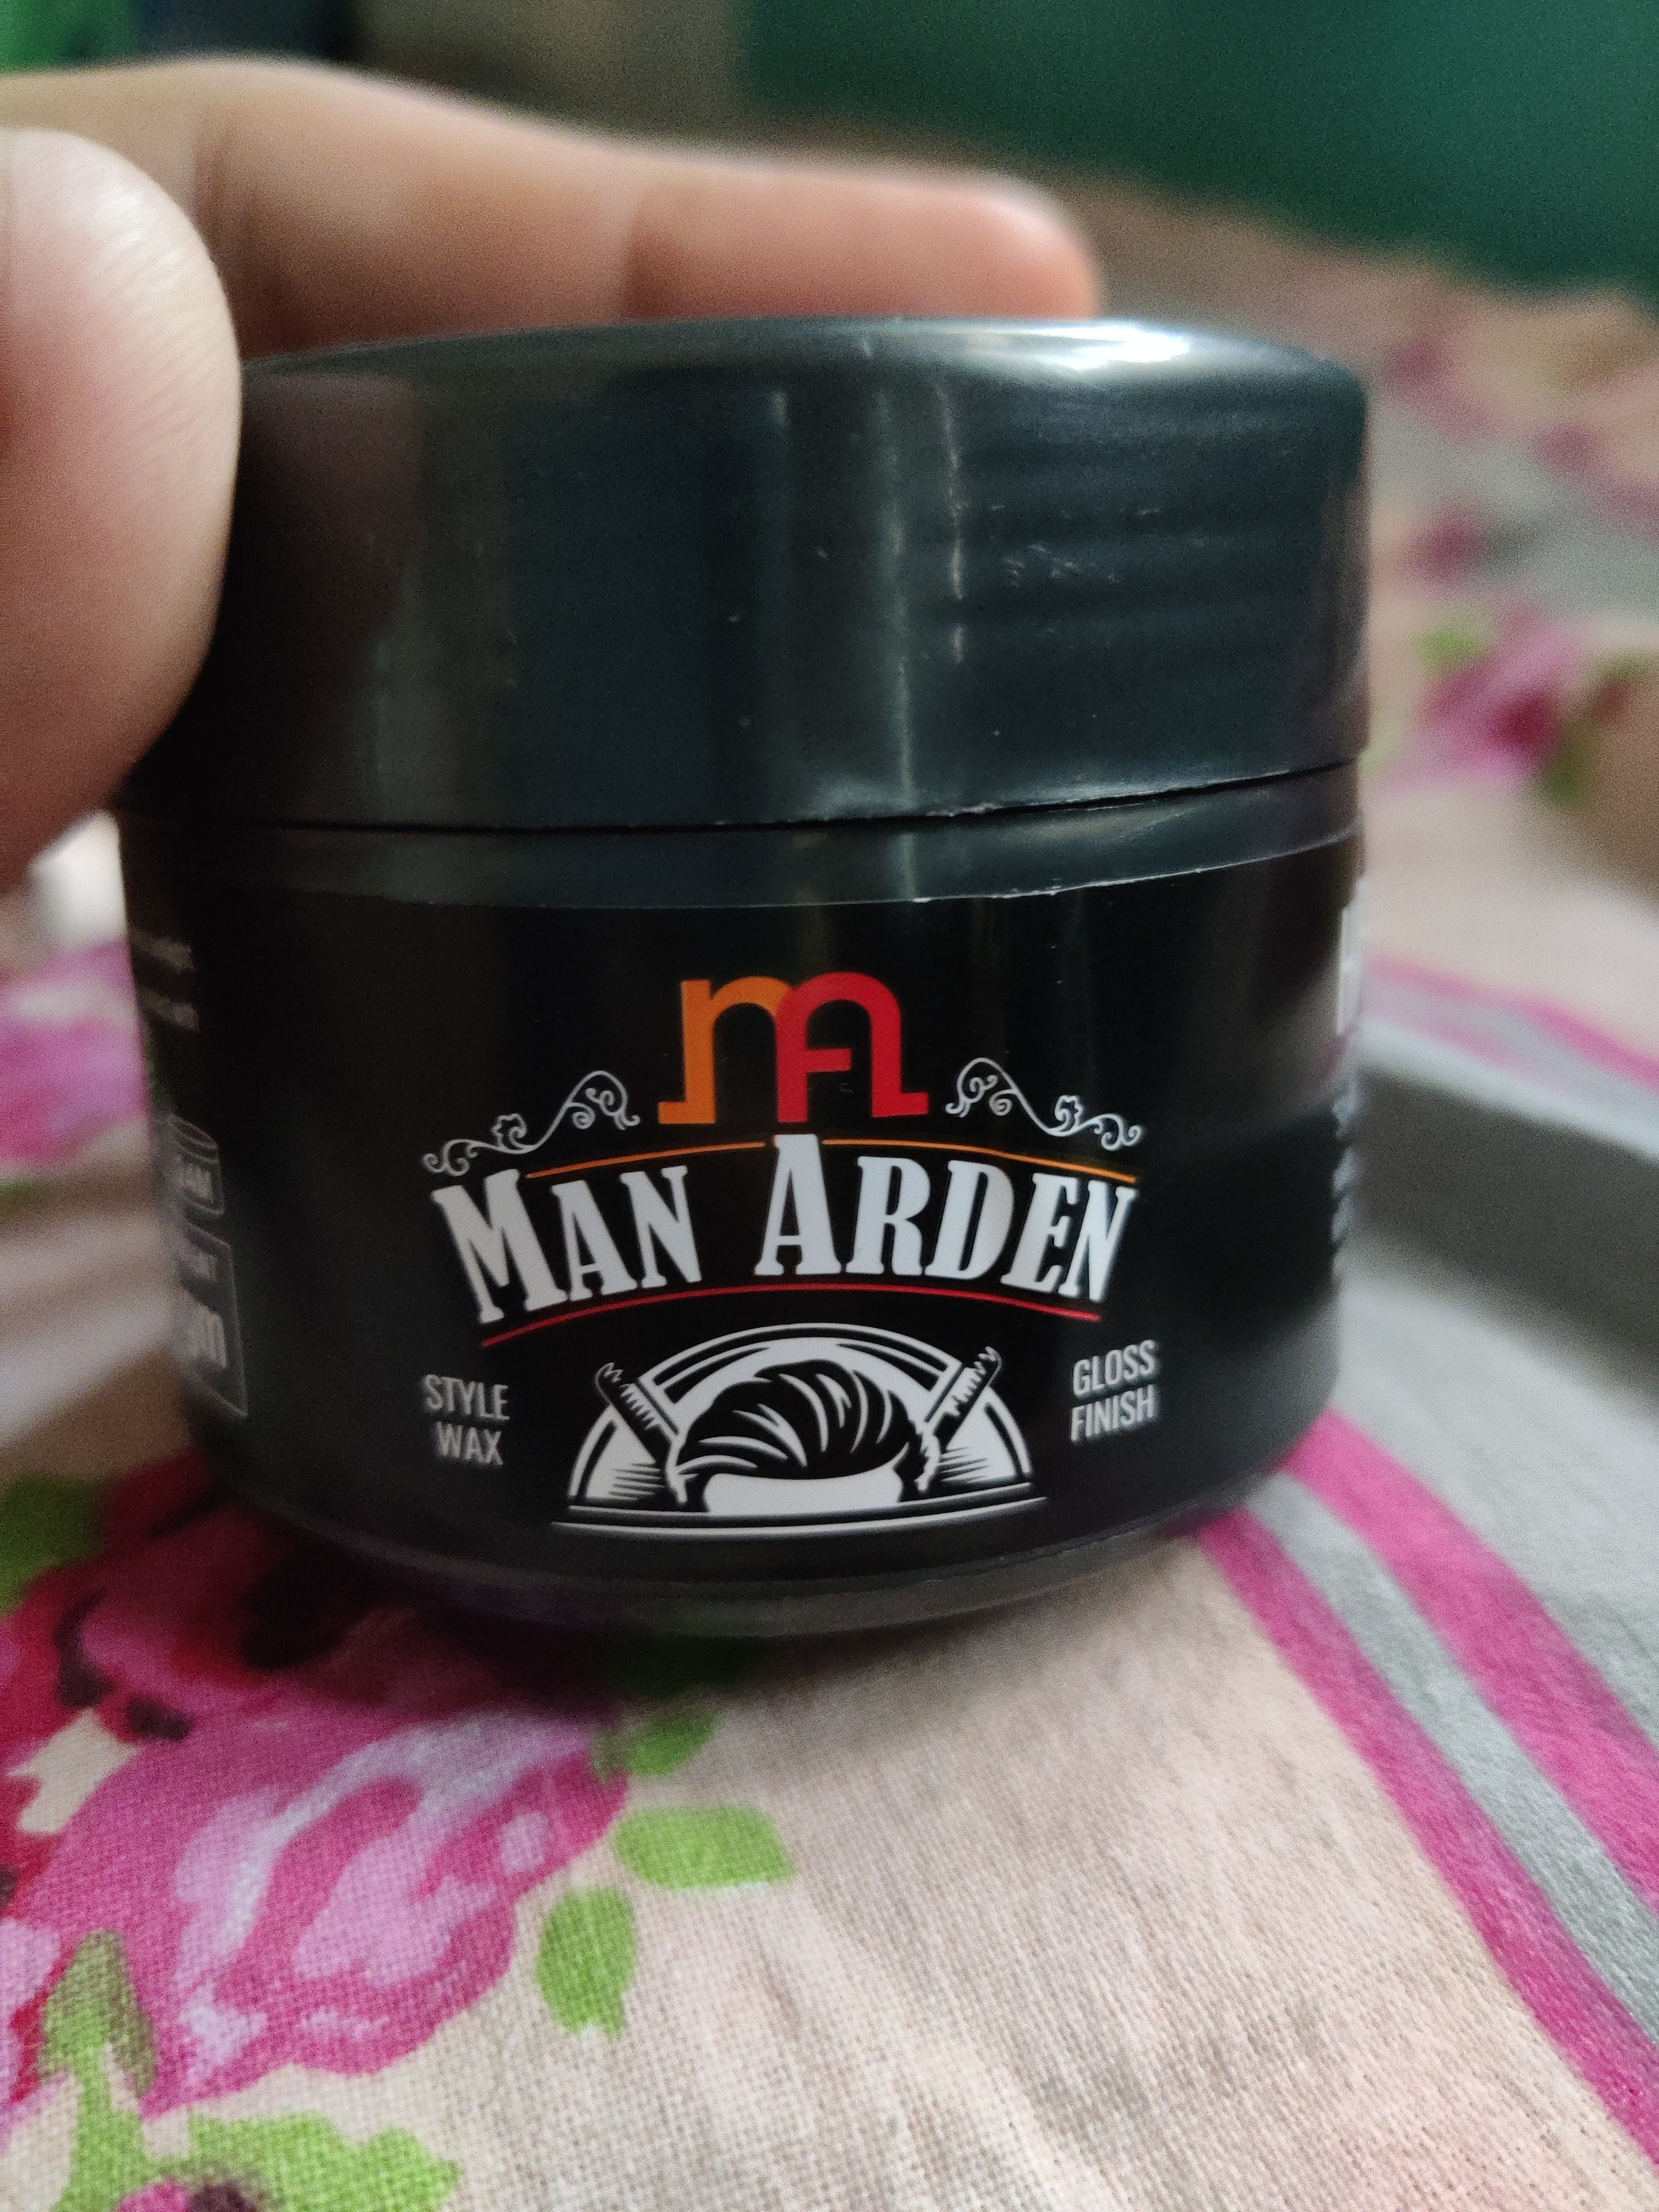 Man Arden Hair Fiber Wax-Good packaged and worth paying-By prakhar_bhawsar